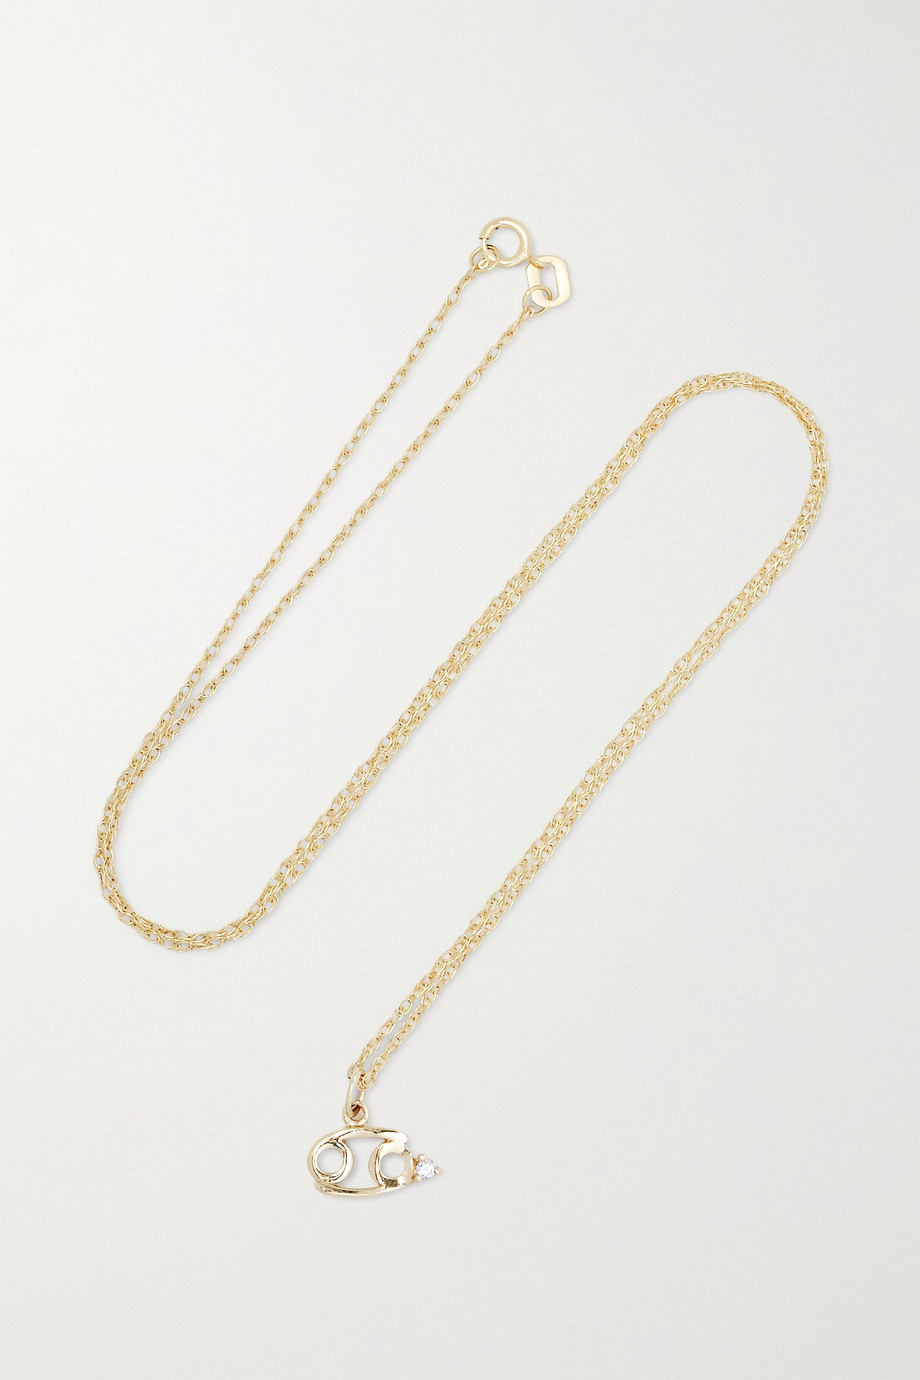 STONE AND STRAND Zodiac 9-karat gold diamond necklace